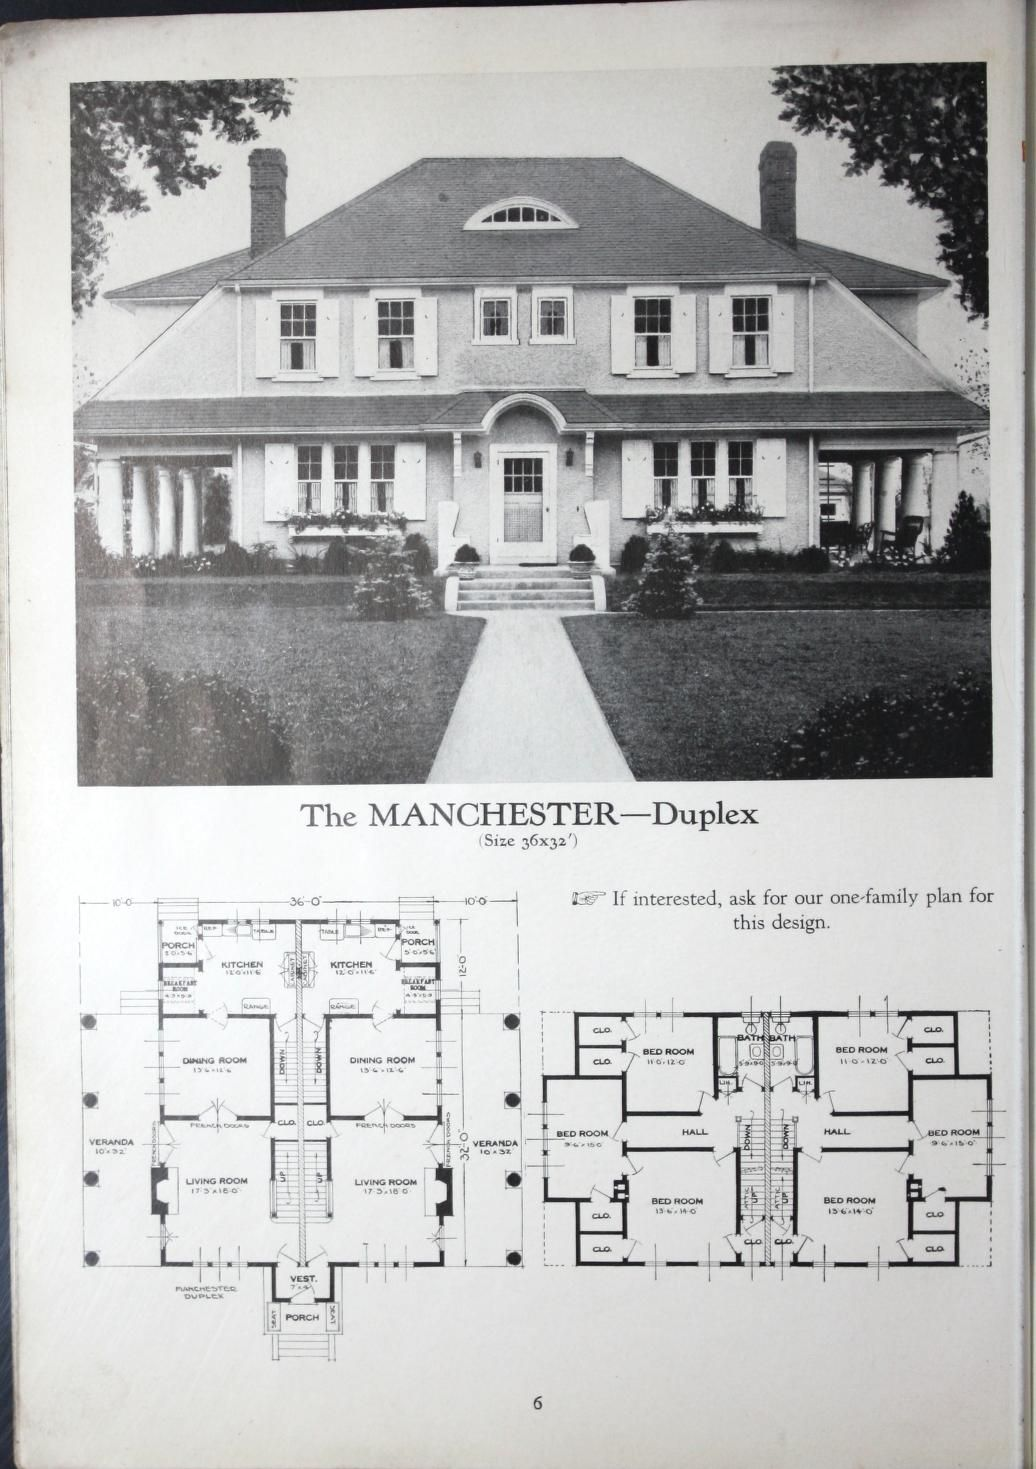 Homes Of Brick And Stucco Standard Homes Company Free Download Borrow And Streaming Multigenerational House Plans Duplex House Plans Vintage House Plans